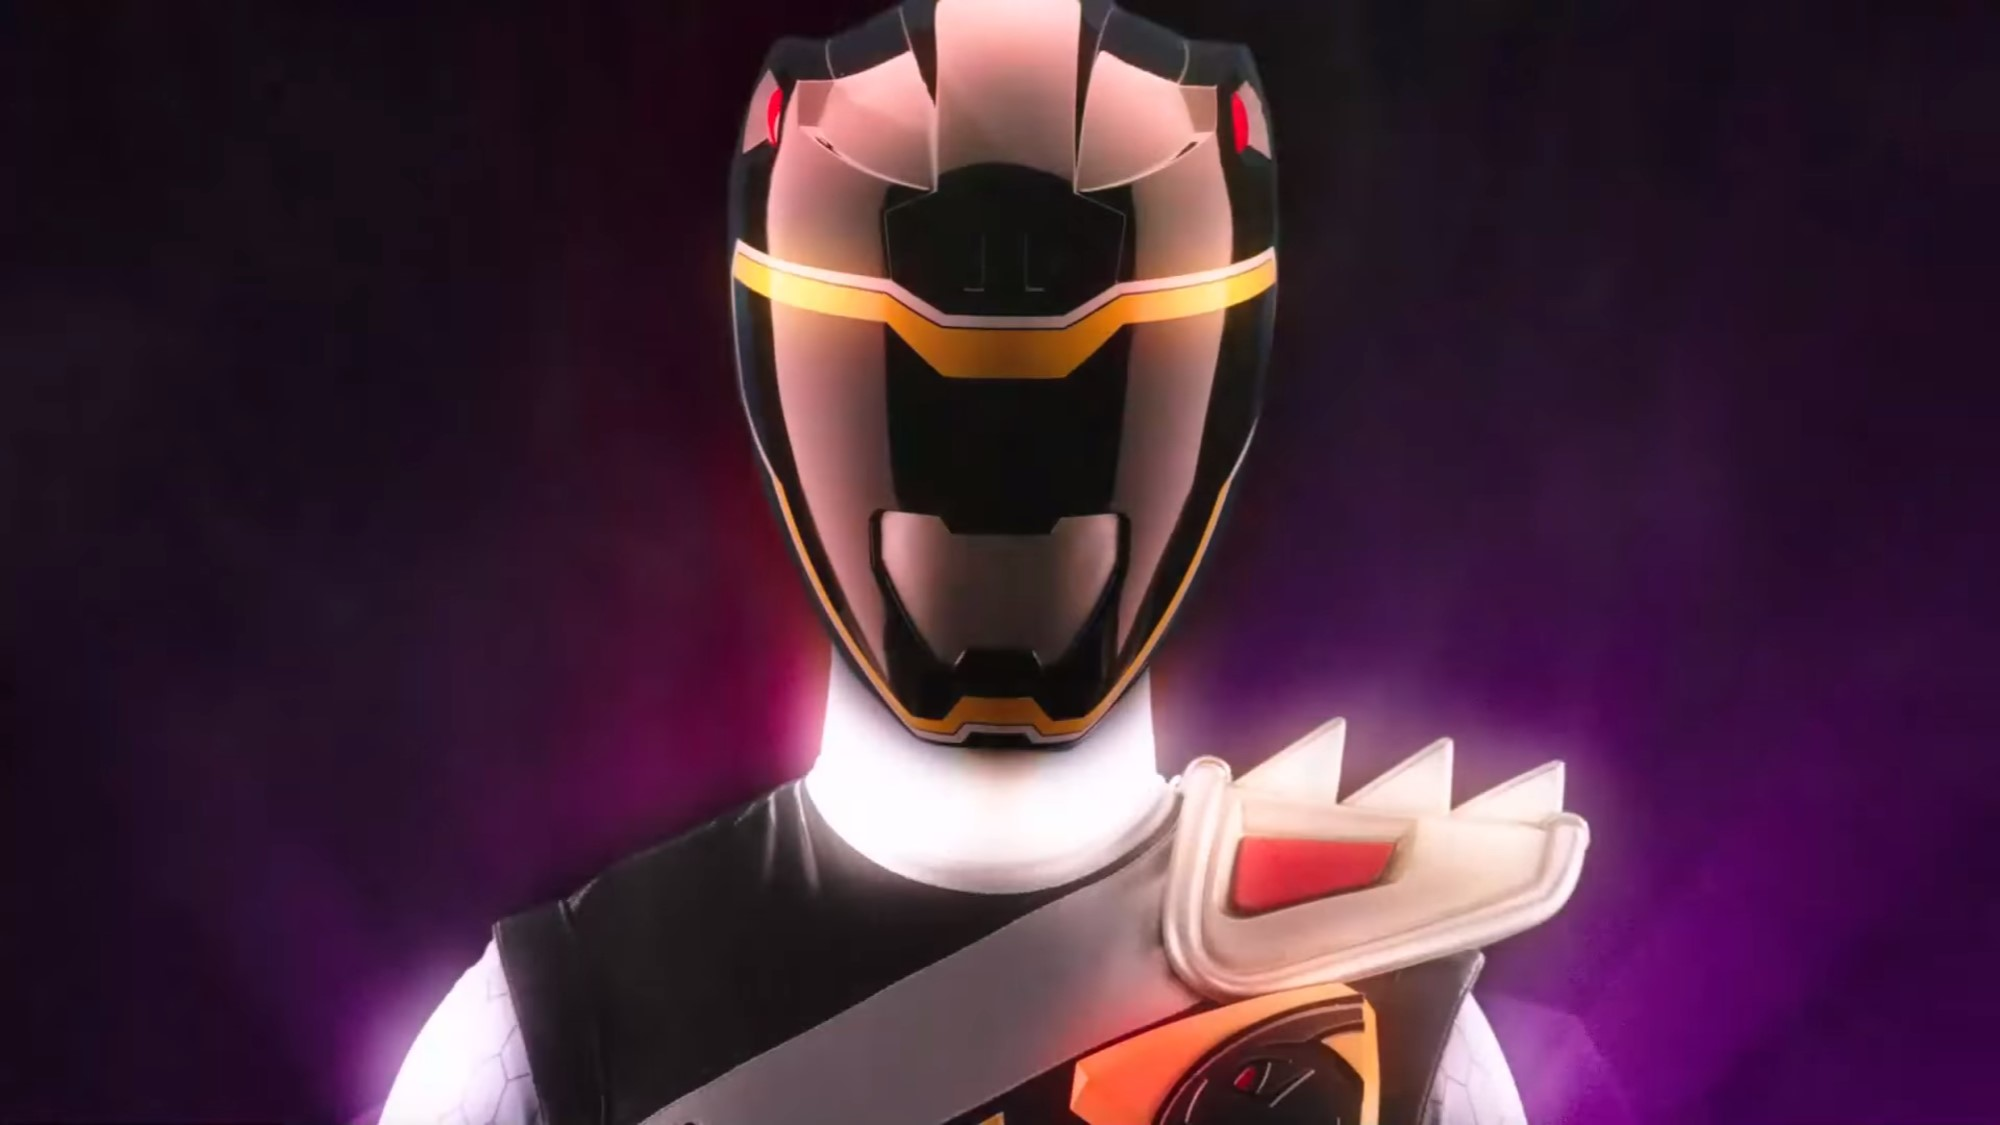 File:Black Dino Charge Ranger Morph 1.jpeg